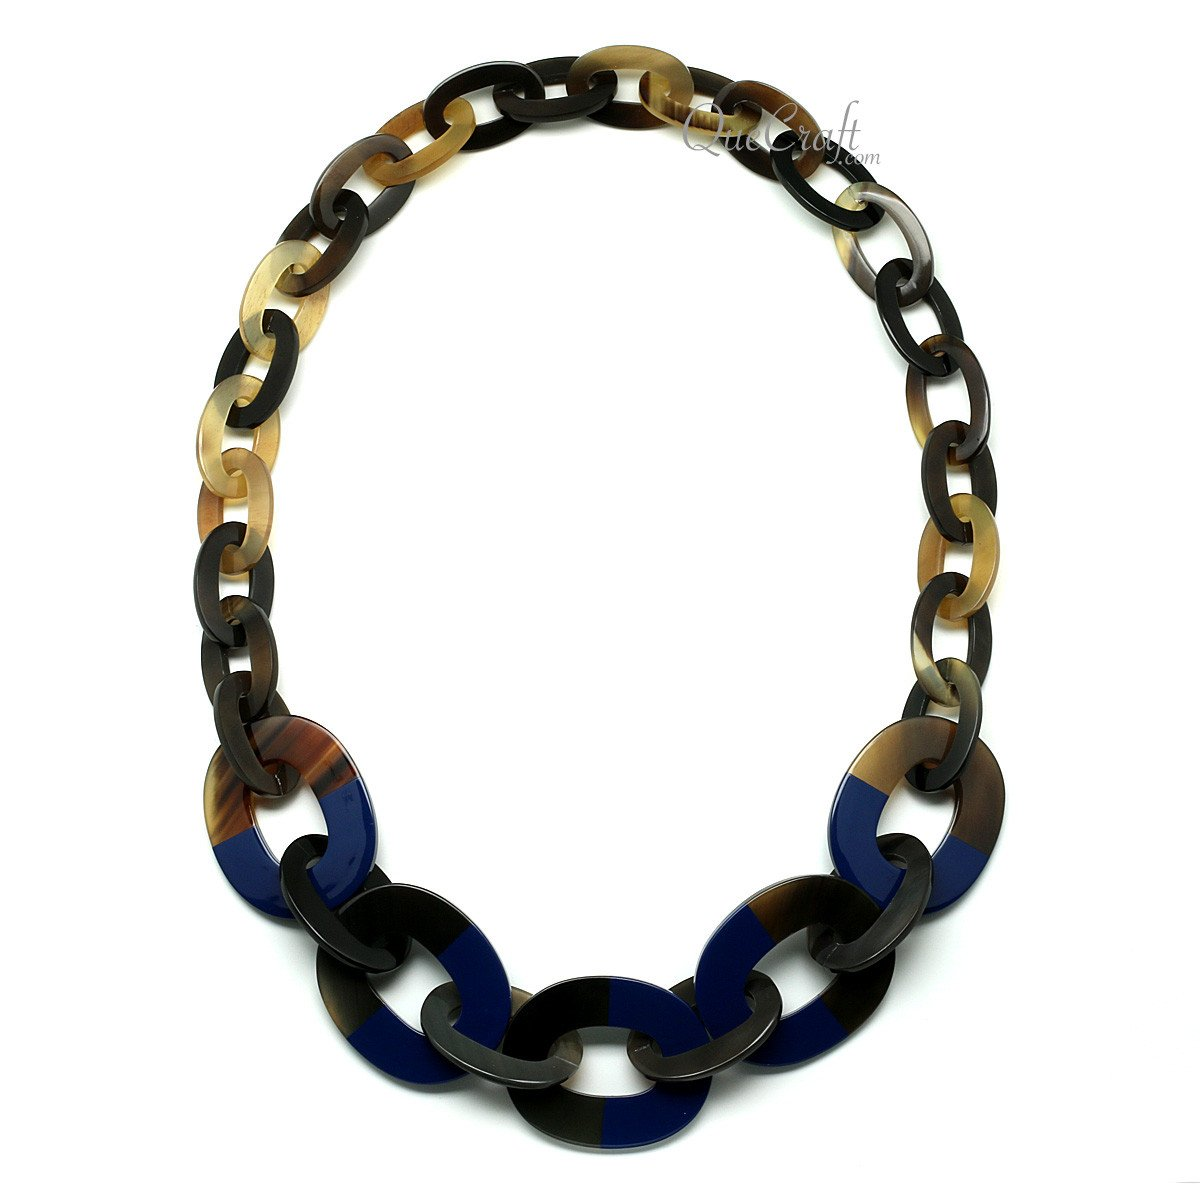 Horn & Lacquer Chain Necklace #11982 - HORN.JEWELRY by QueCraft